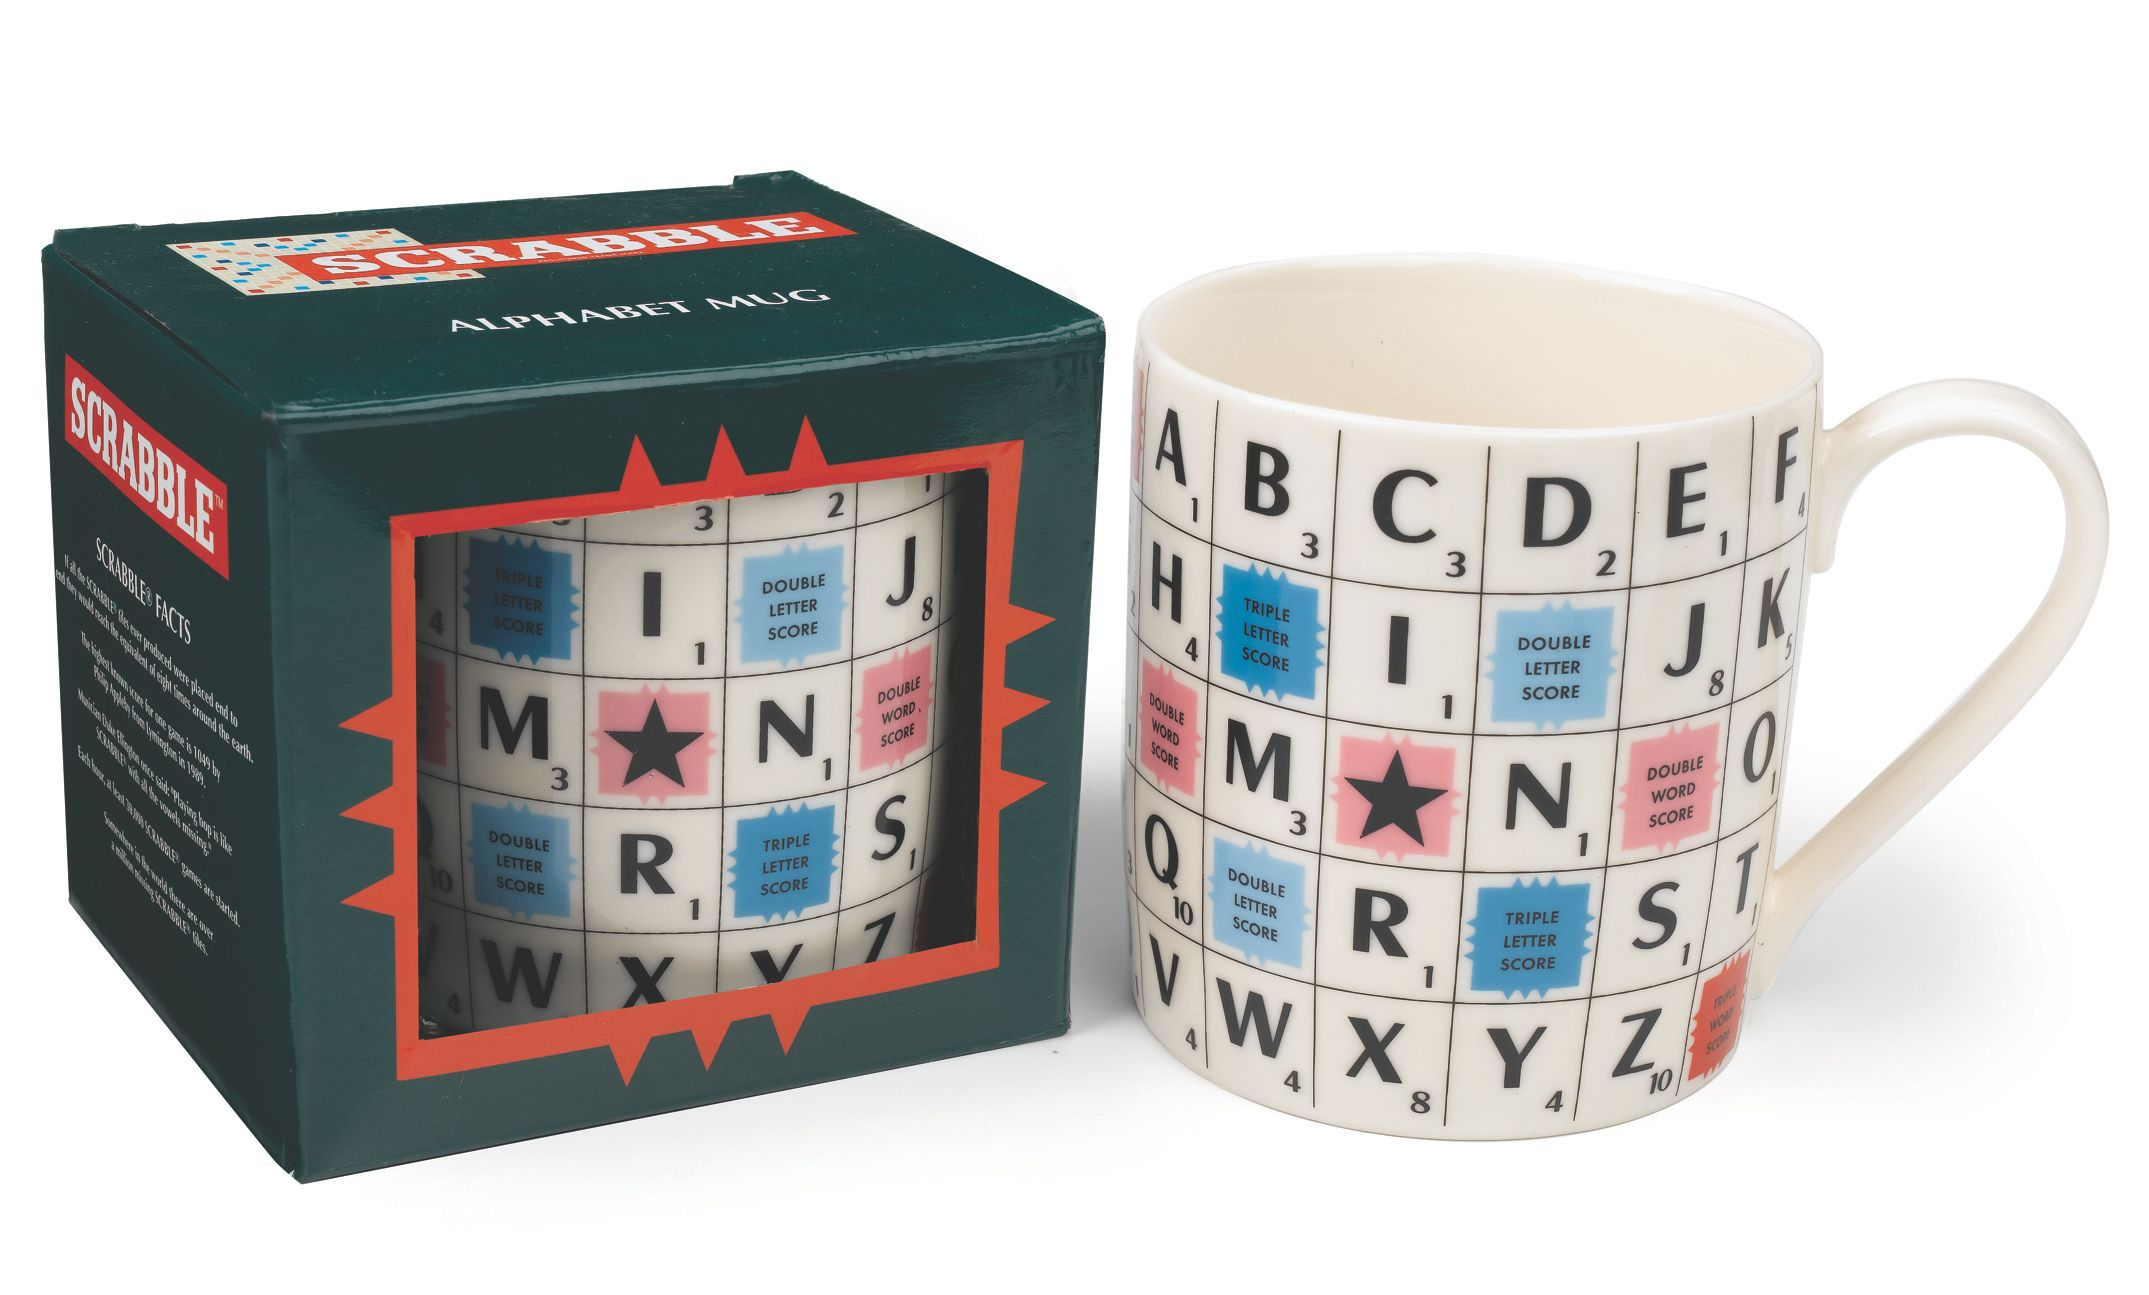 Scrabble ceramic alphabet mug